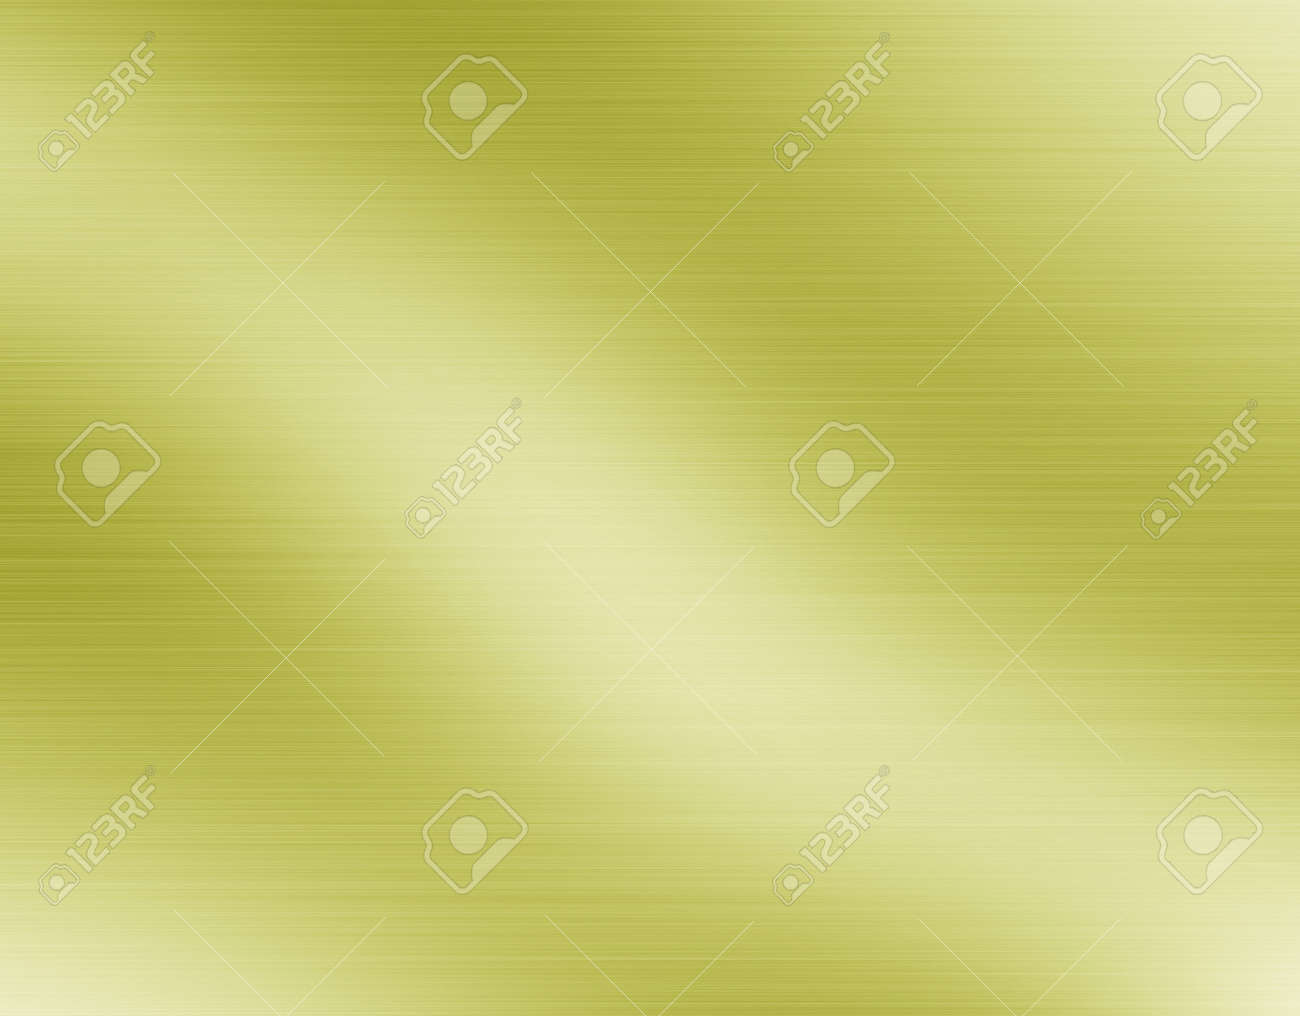 metal, stainless steel texture background with reflection - 120282388